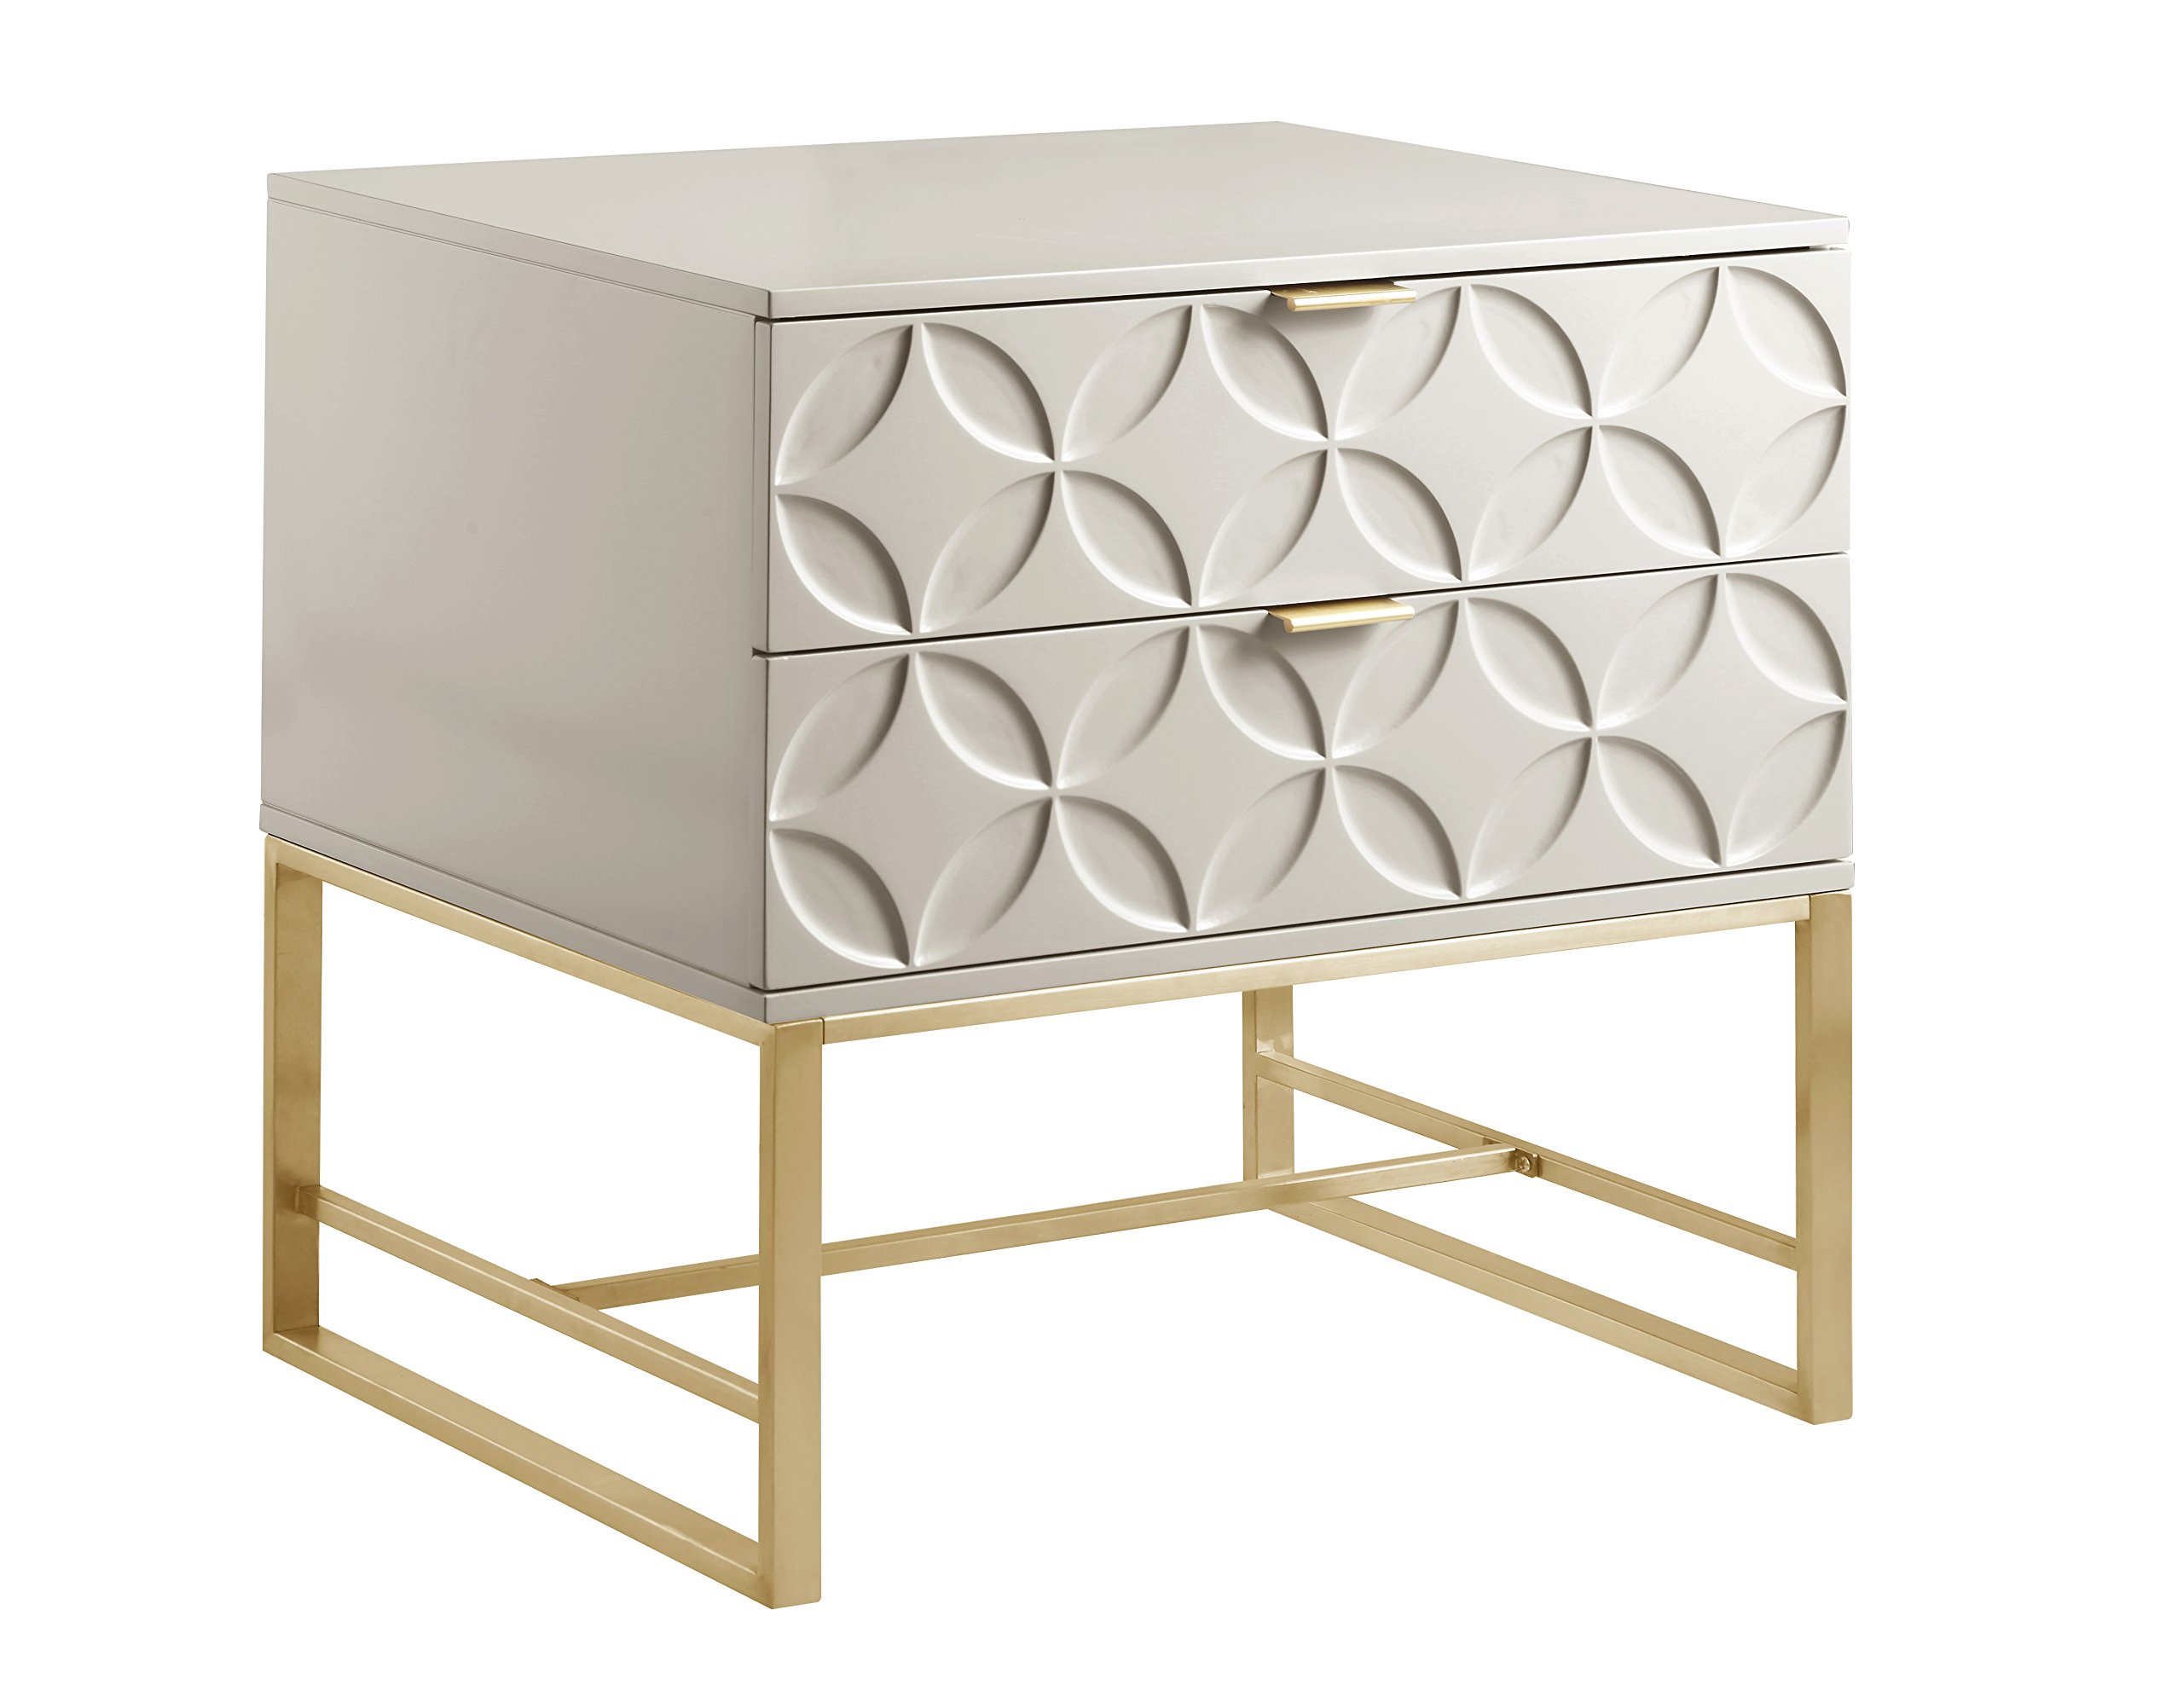 Iconic Home Mantau Nightstand Side Table with 2 Self Closing Lacquer Drawers Brass Finished Stainless Steel Frame Base, Modern Contemporary, Beige by Iconic Home (Image #3)